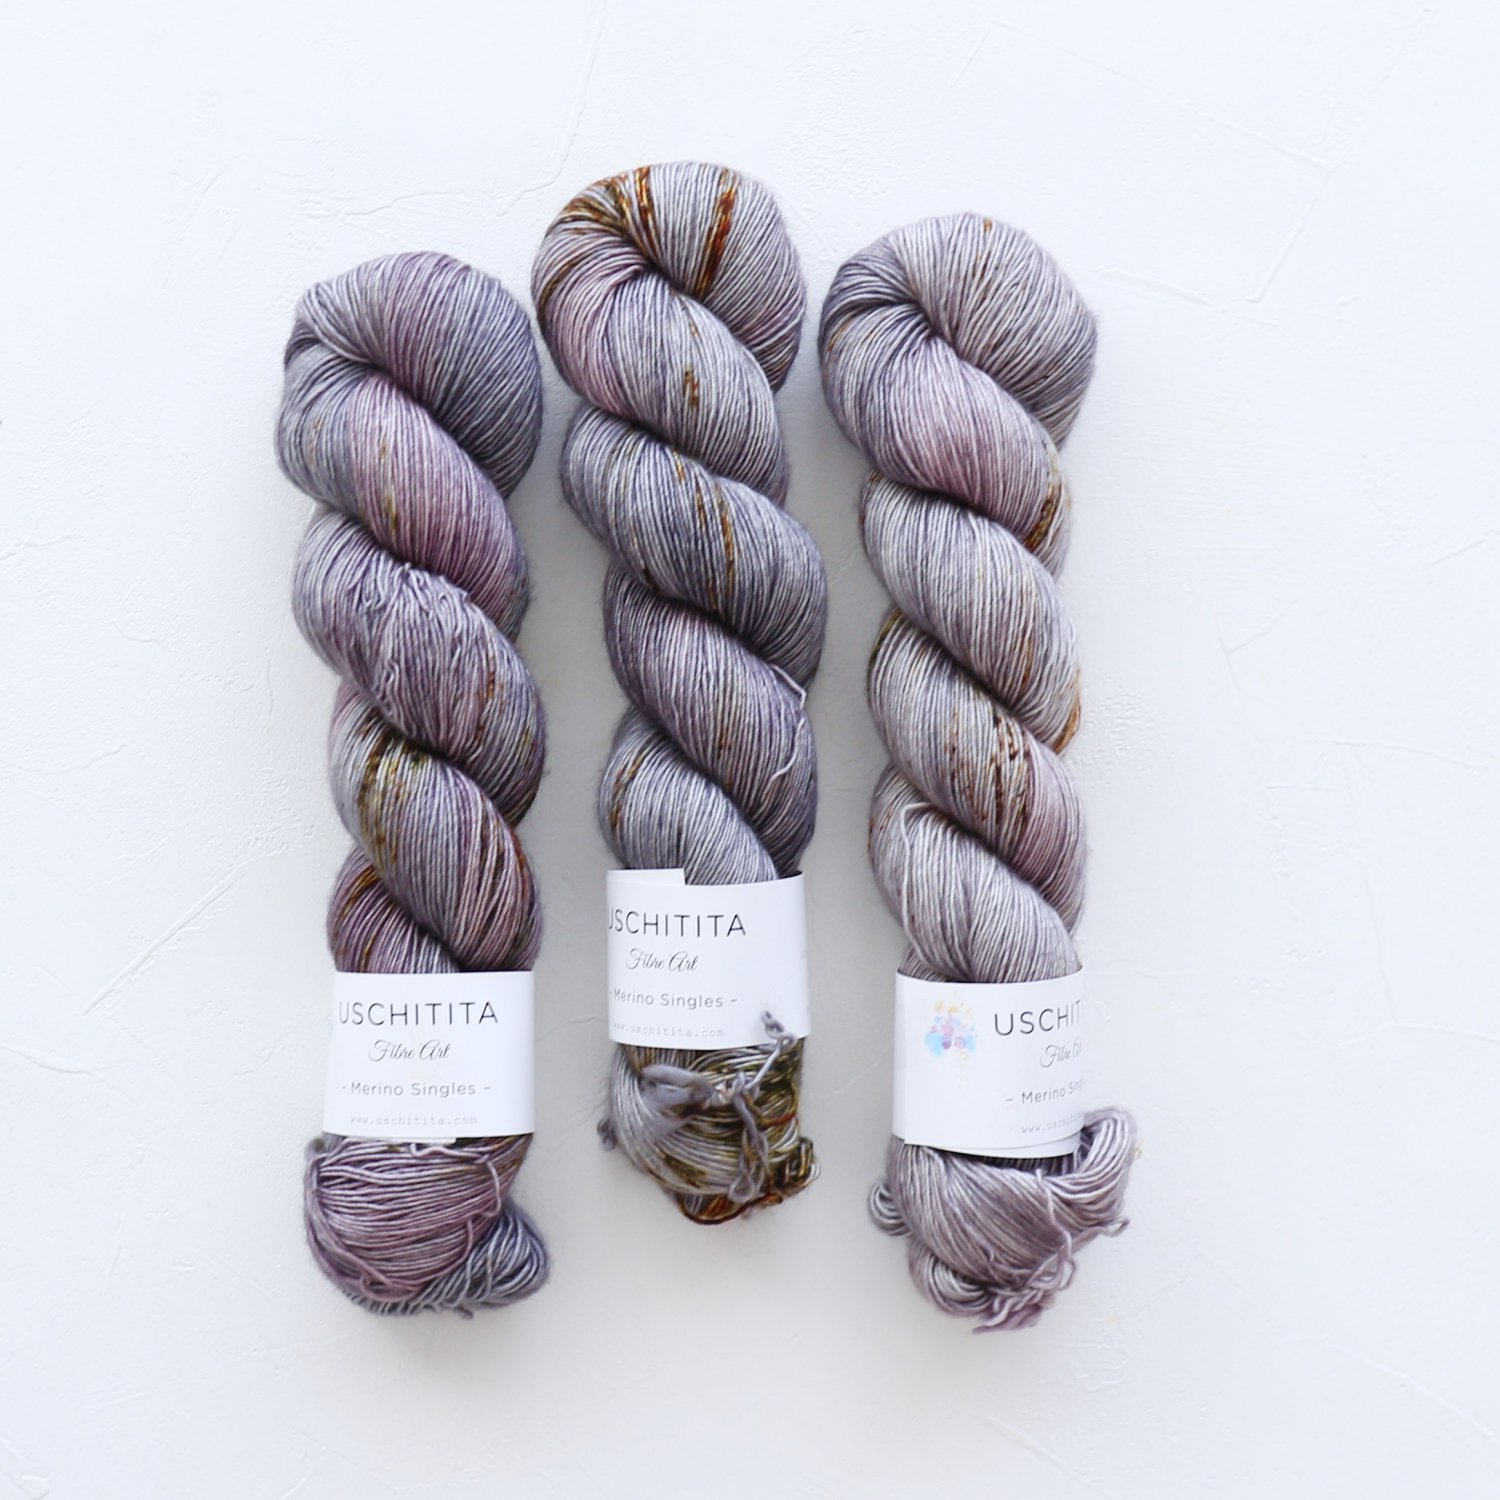 【uschitita】<br>Merino Singles<br>Kitty